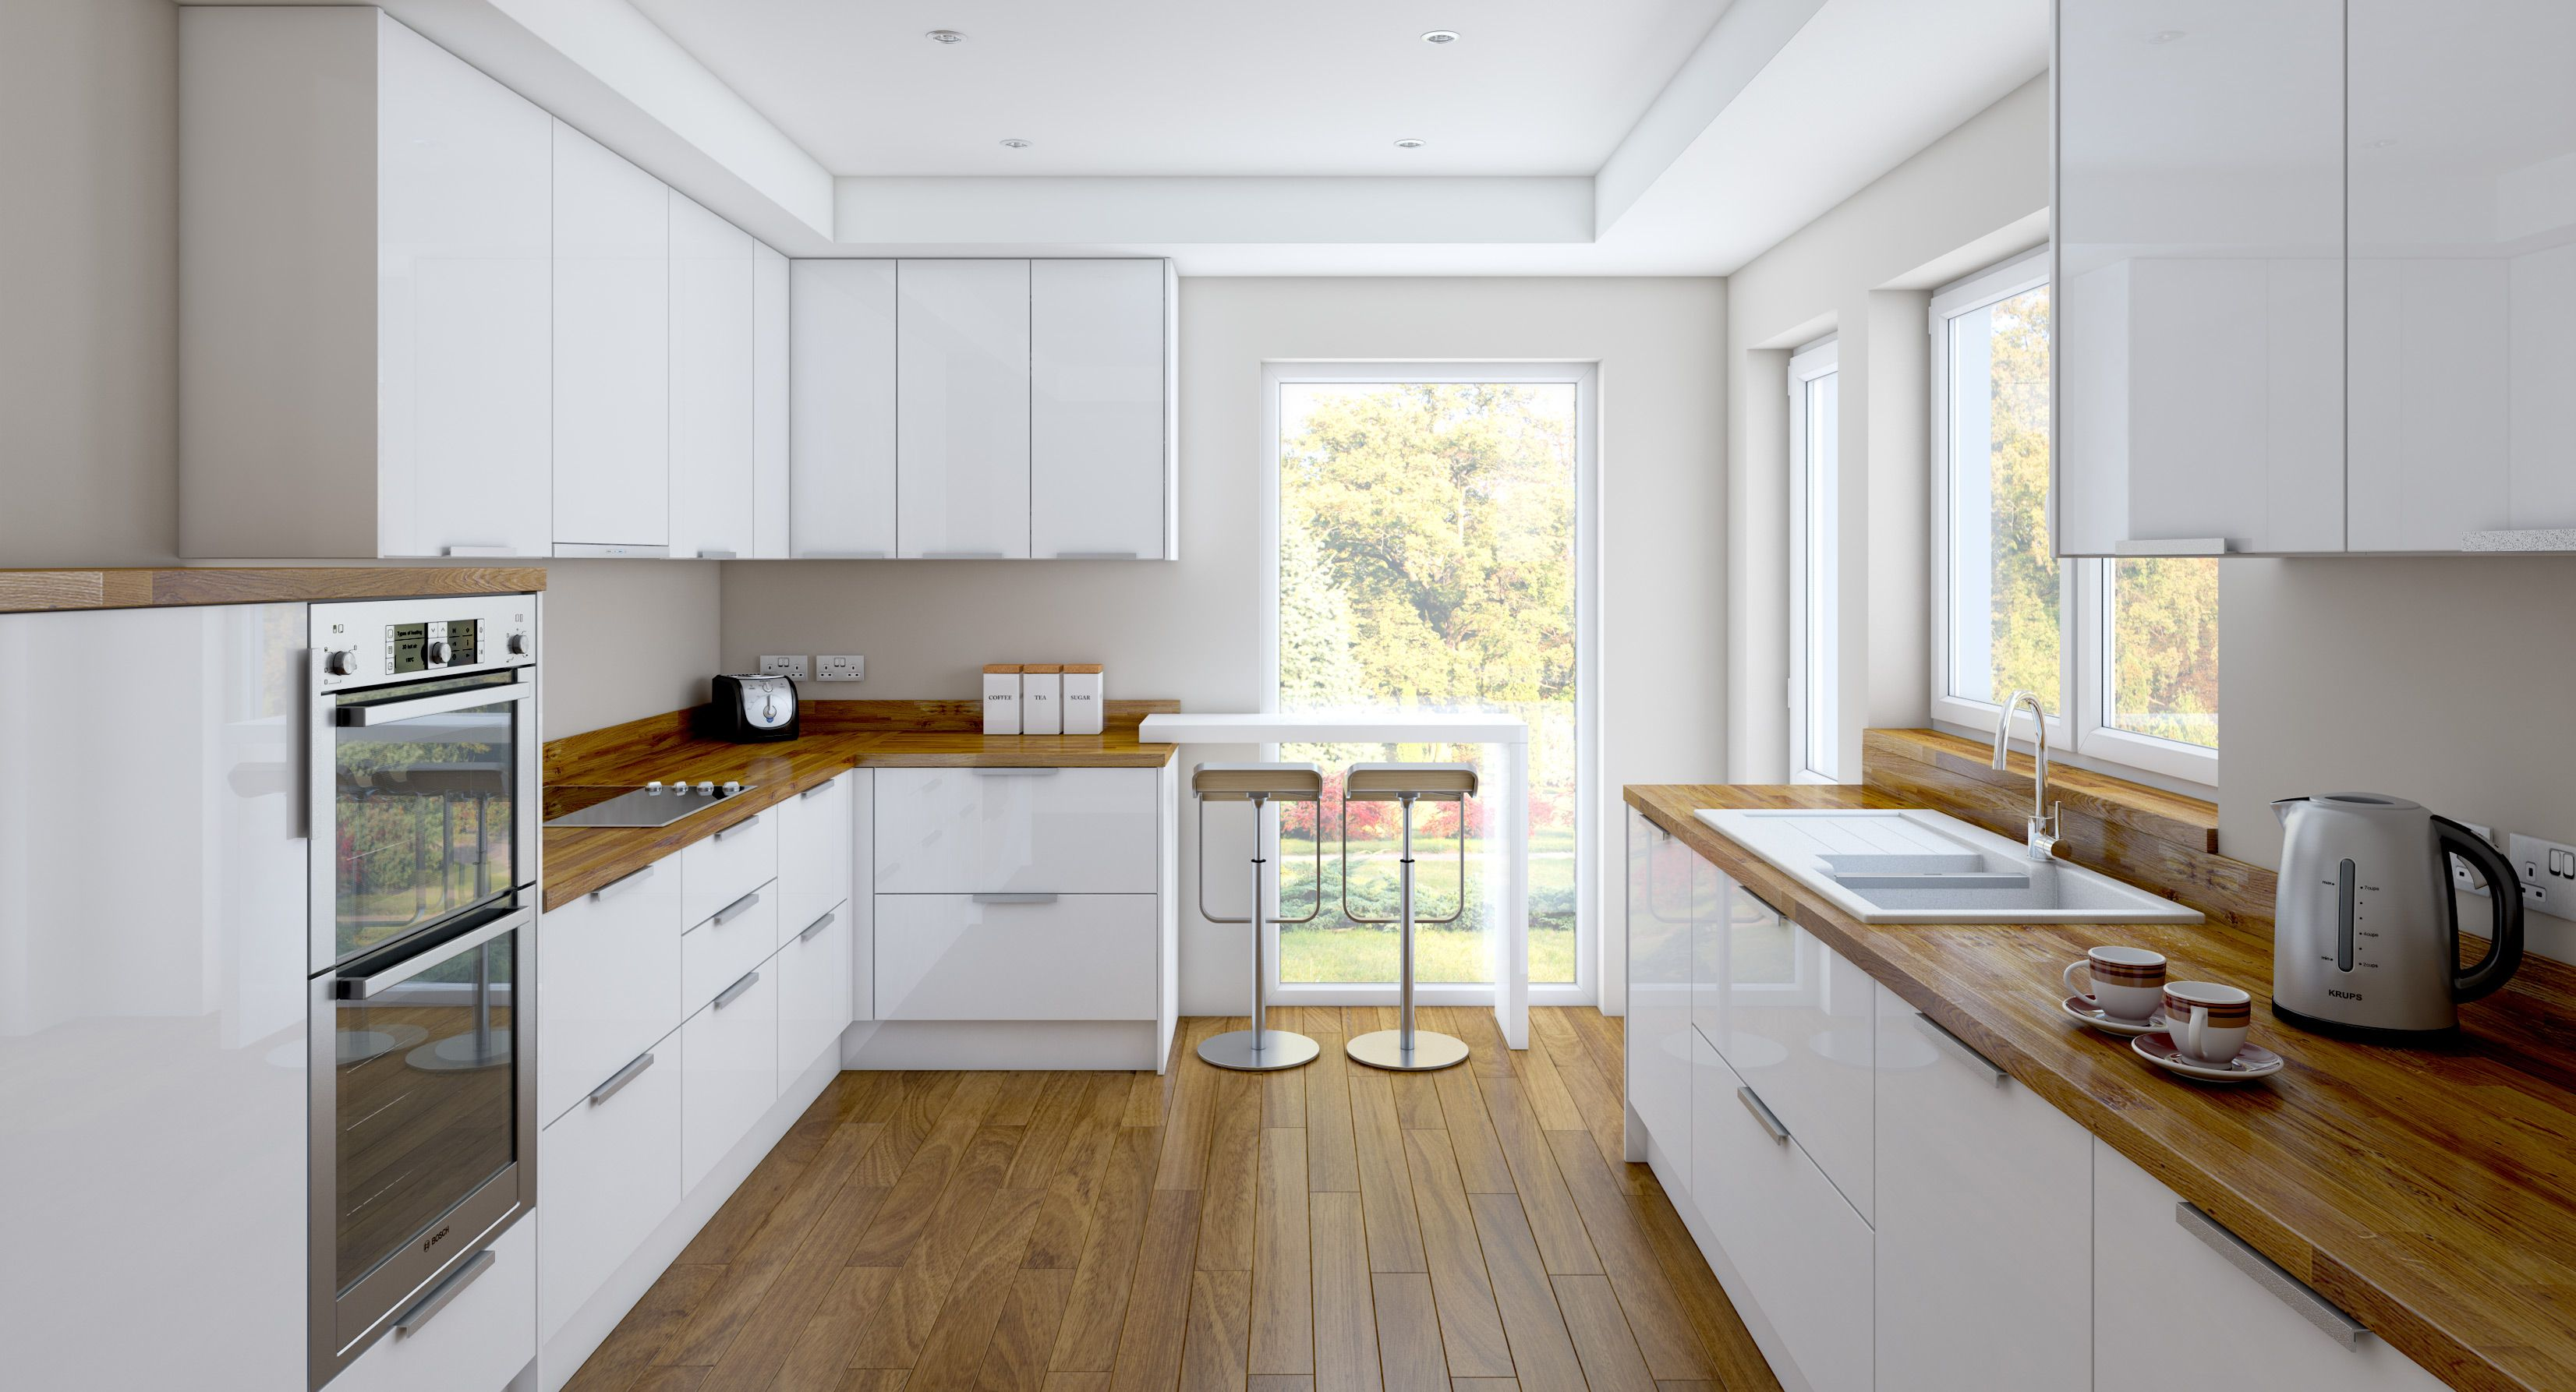 Ikea Modern Kitchen Cabinets White charming and classy wooden kitchen countertops | white gloss